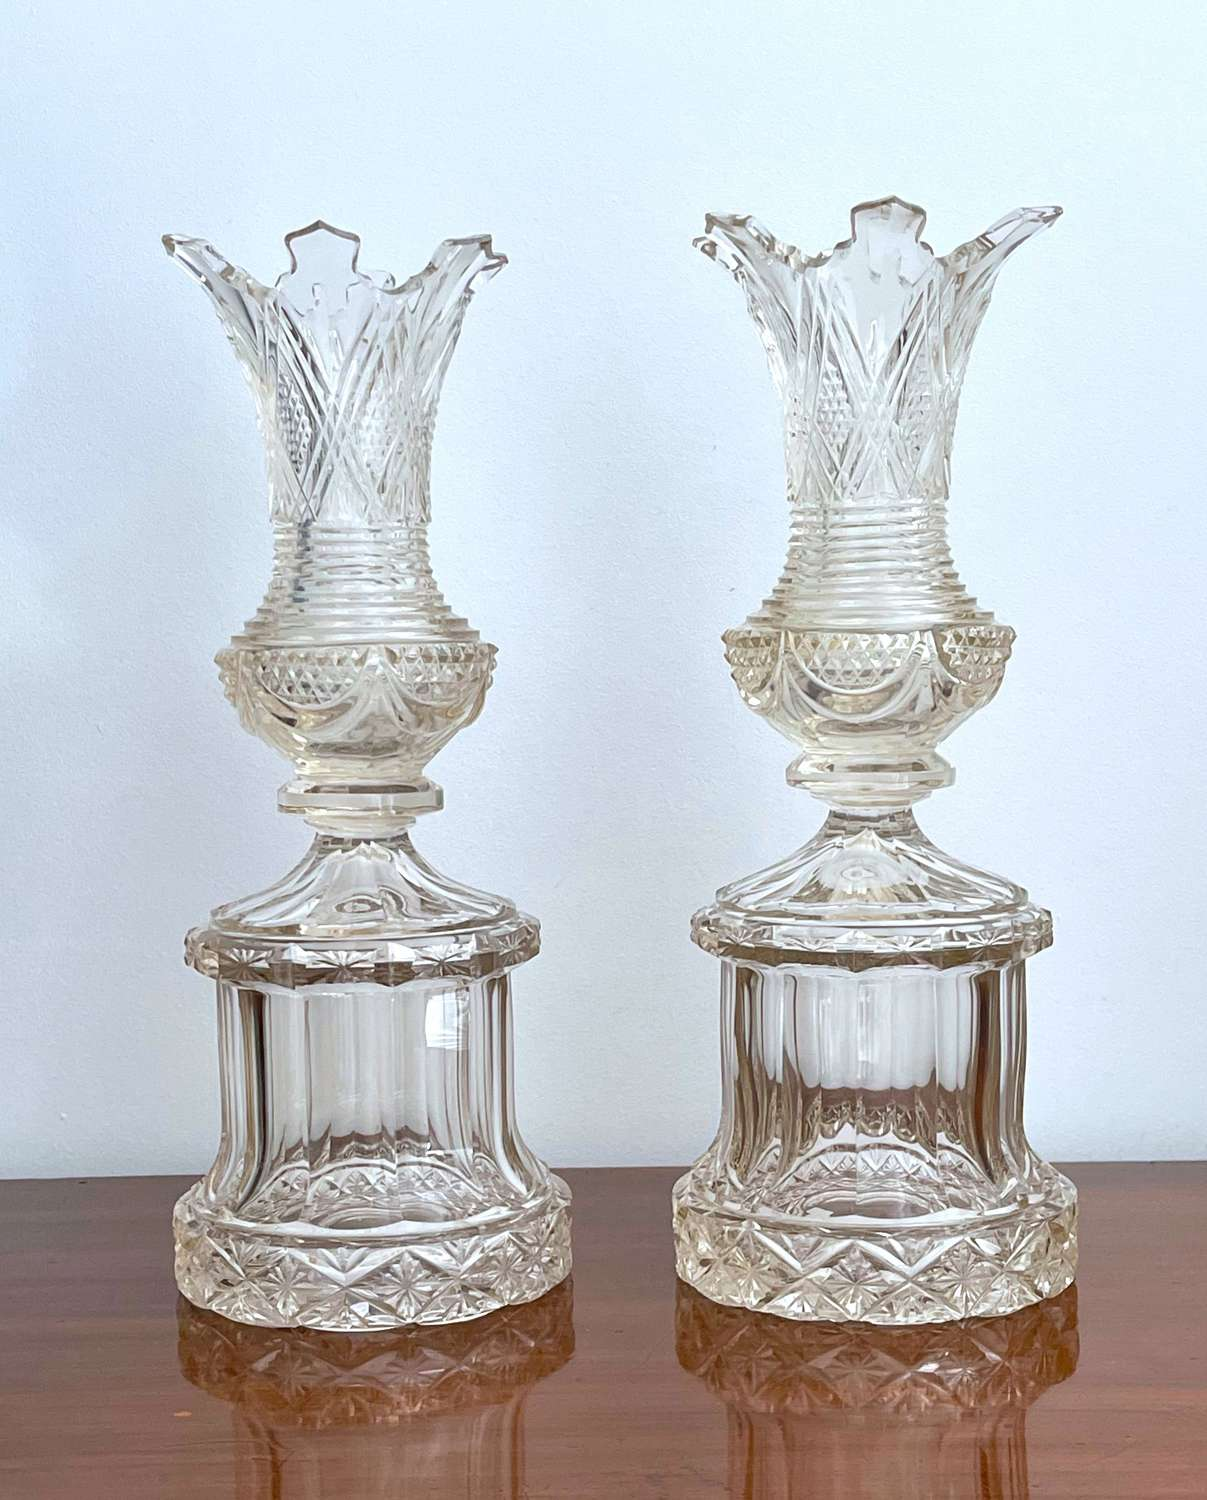 A Pair of Tall Highly Cut Antique Crystal Bohemian Vases